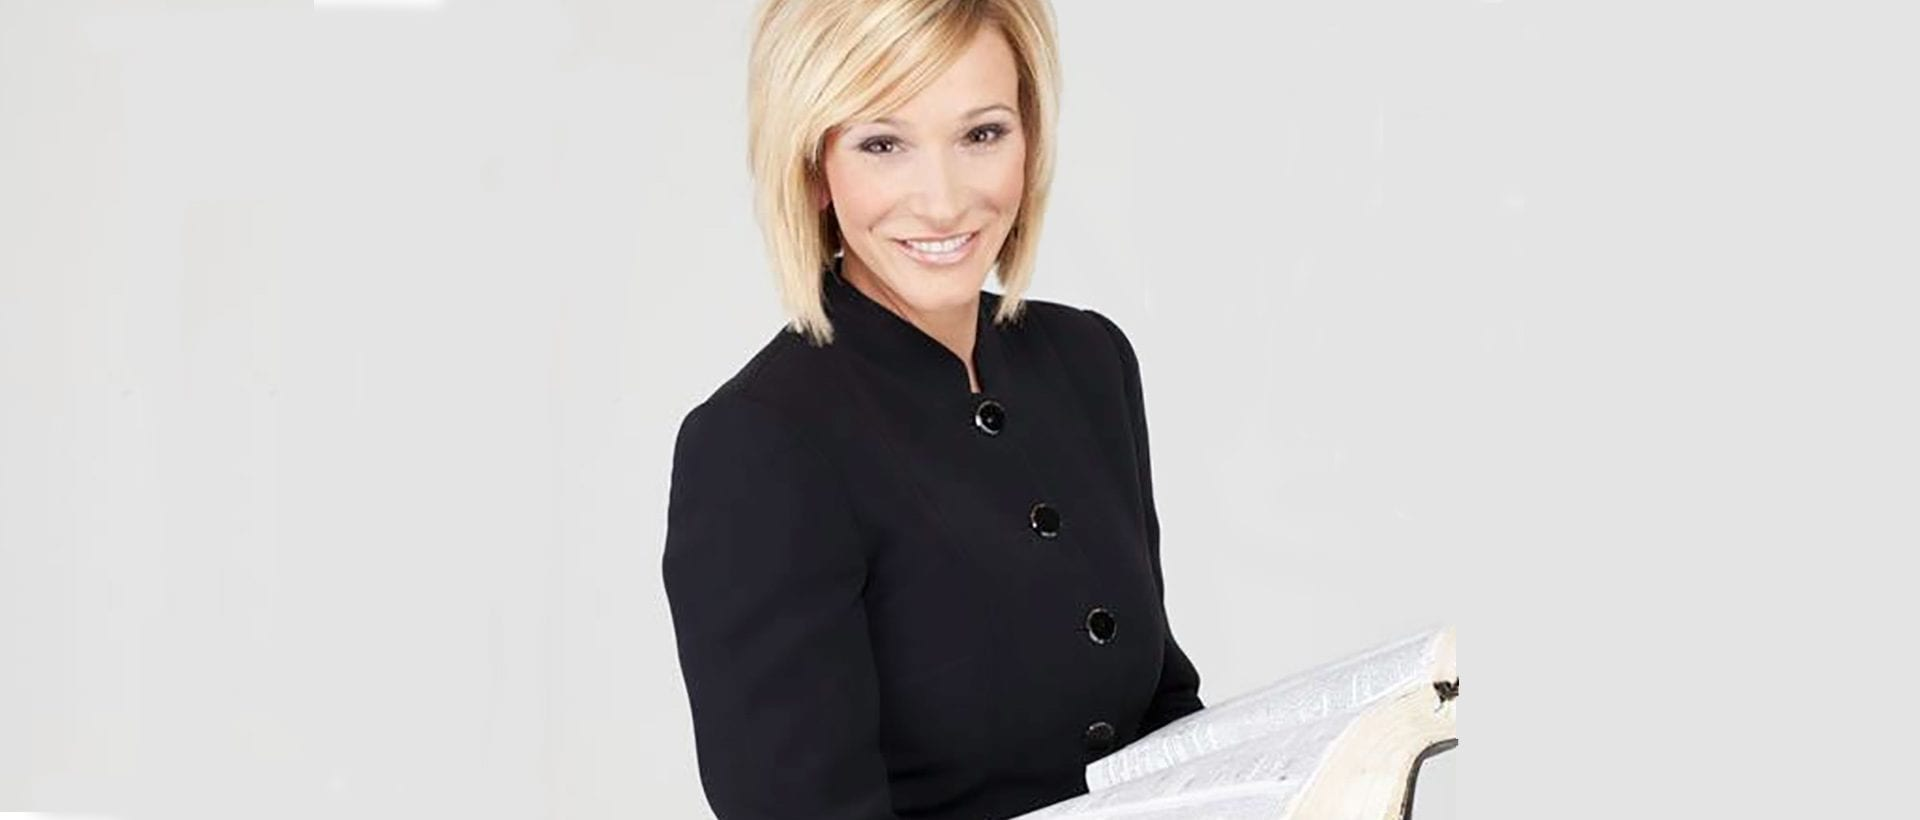 9 Things You Should Know About Prosperity Gospel Preacher Paula White